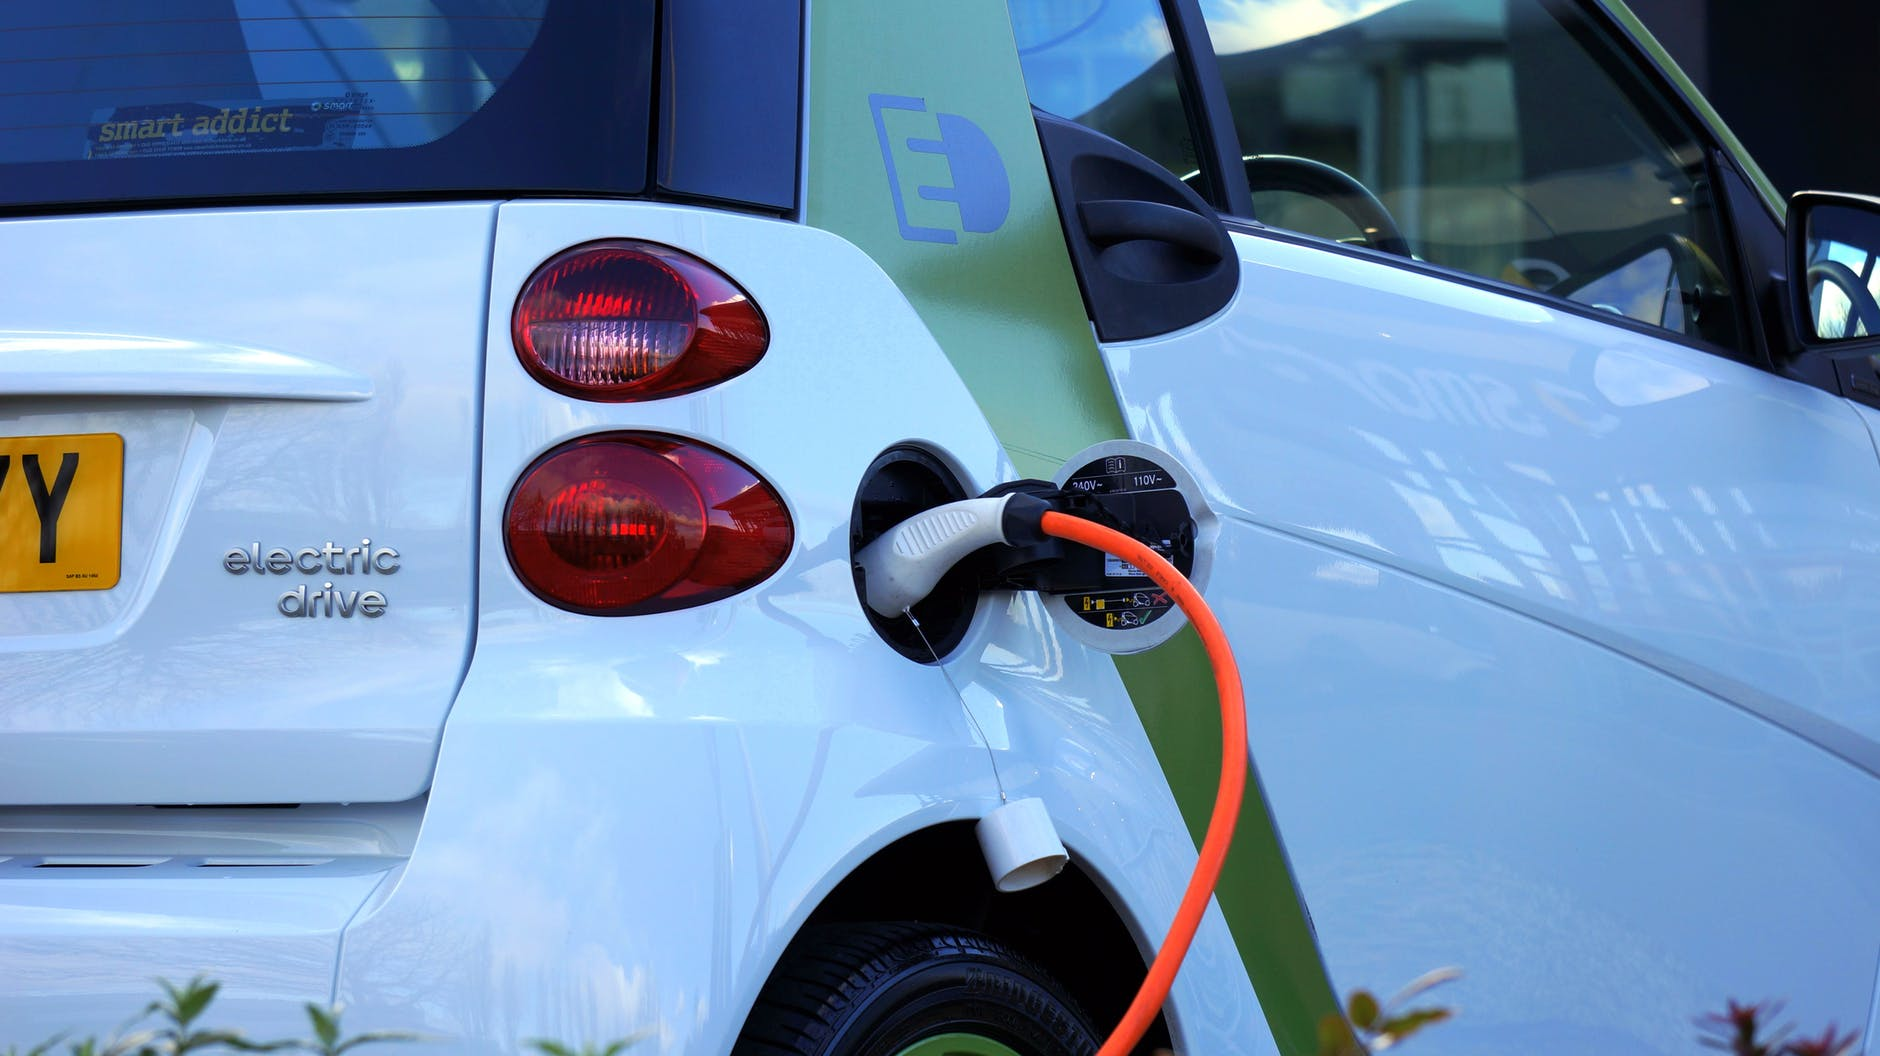 Are We Close To Electric Cars Taking Over